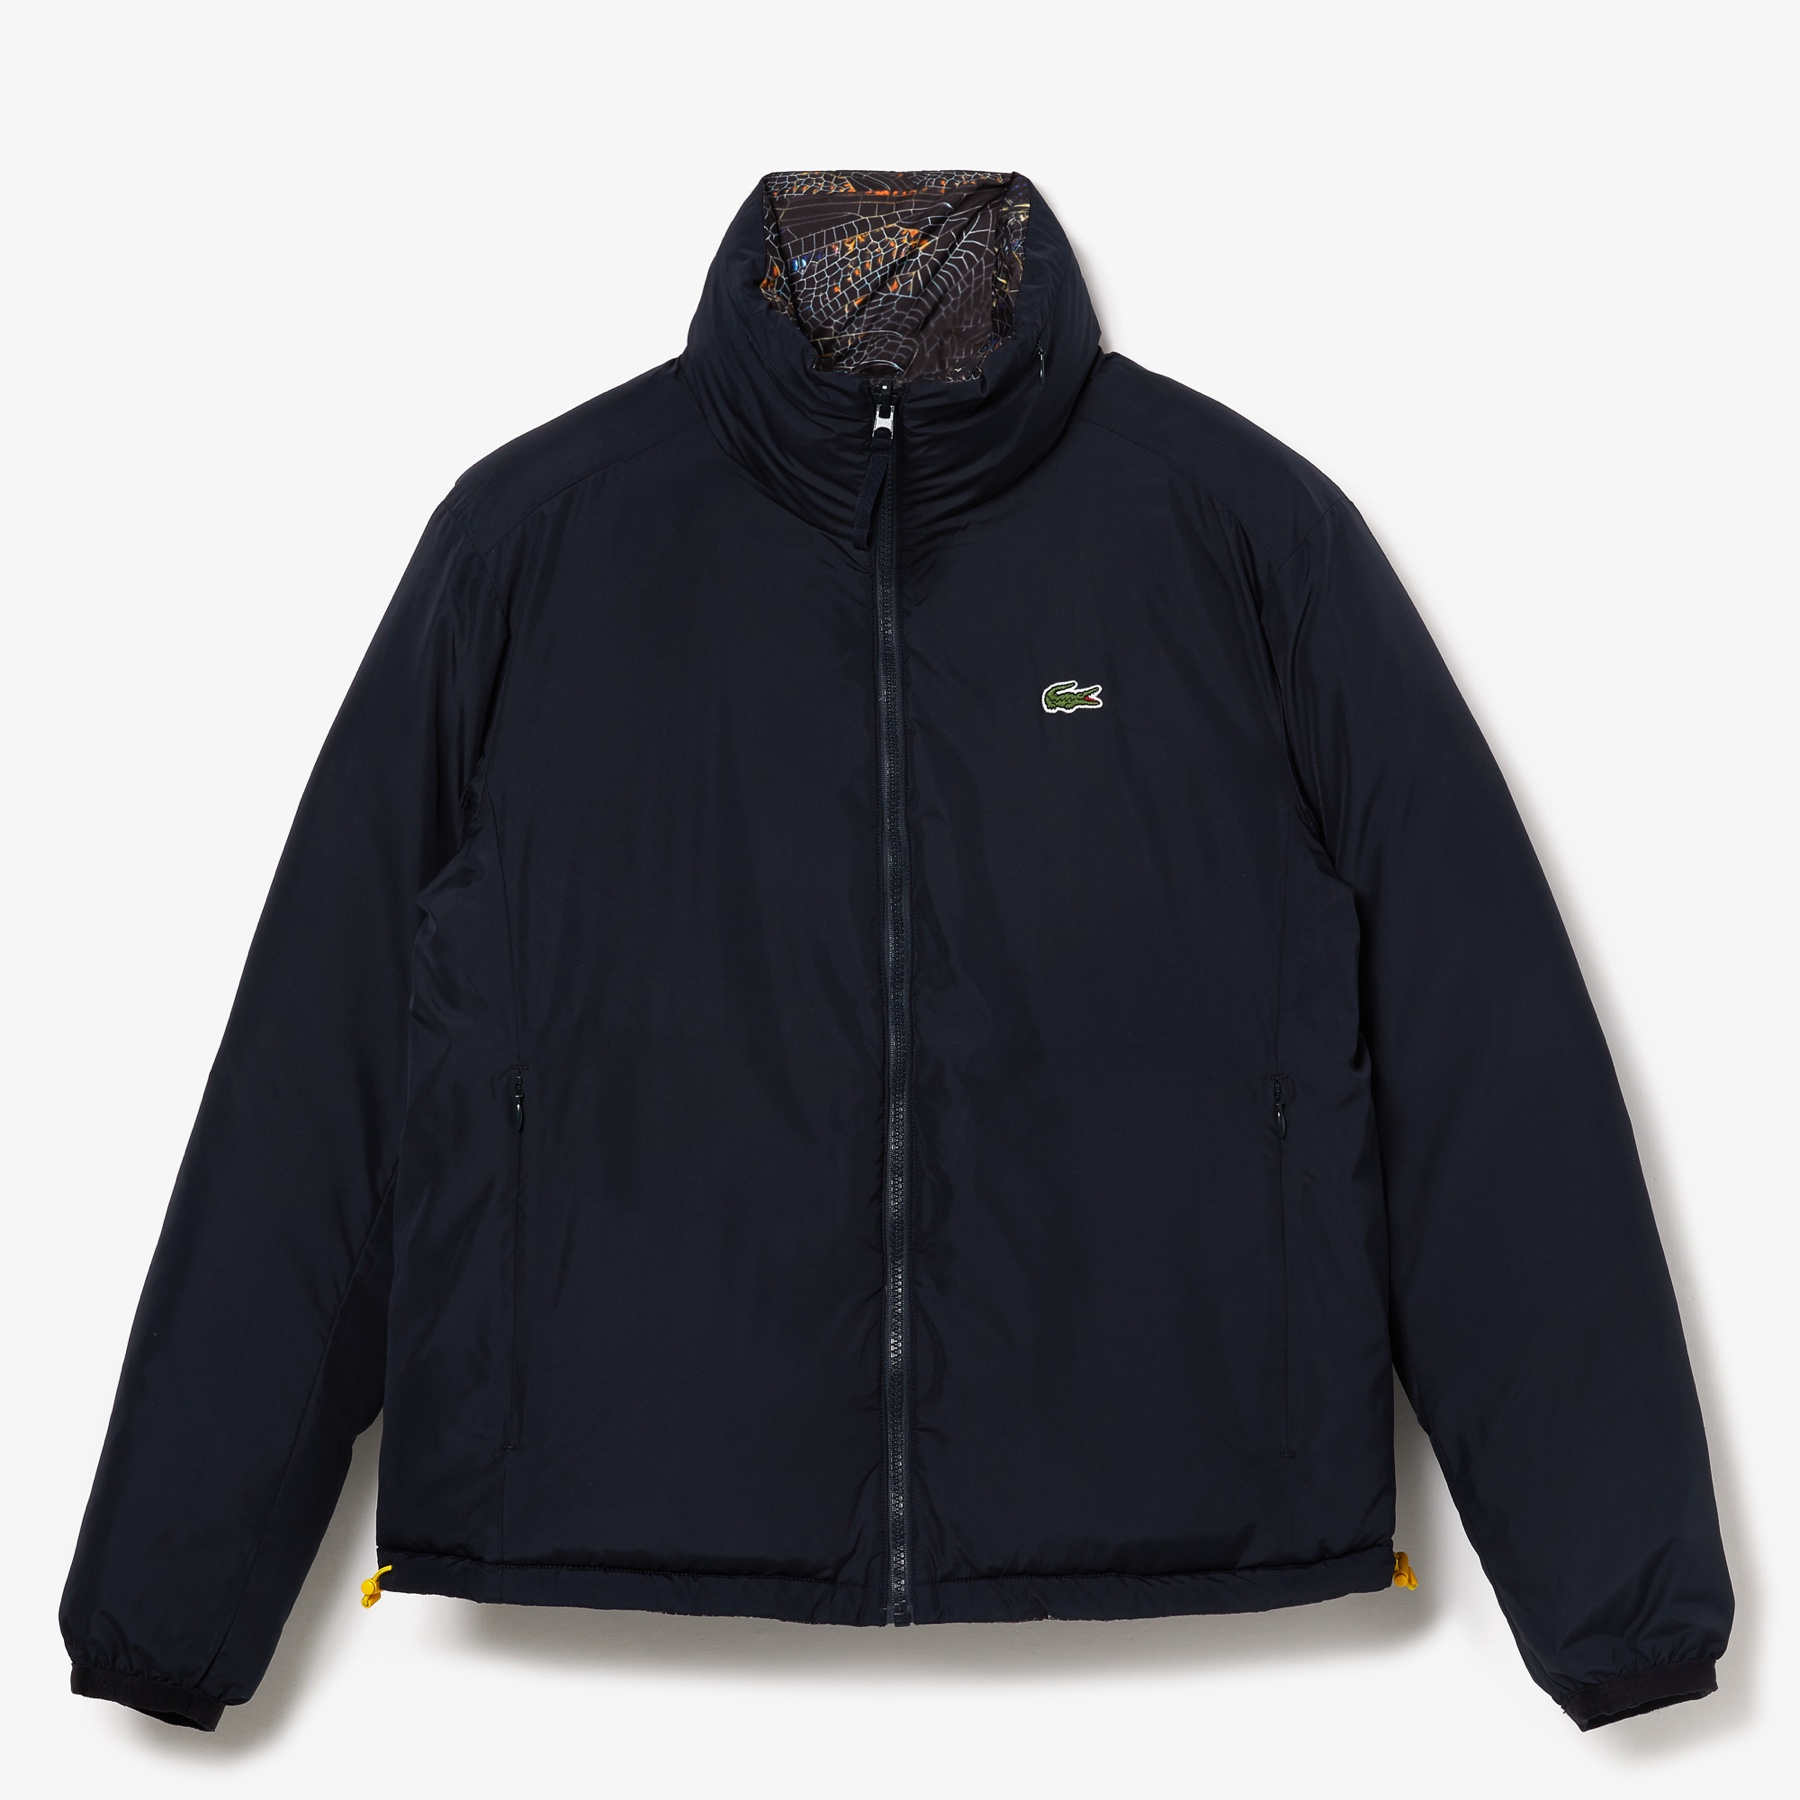 Lacoste National Geographic jacket